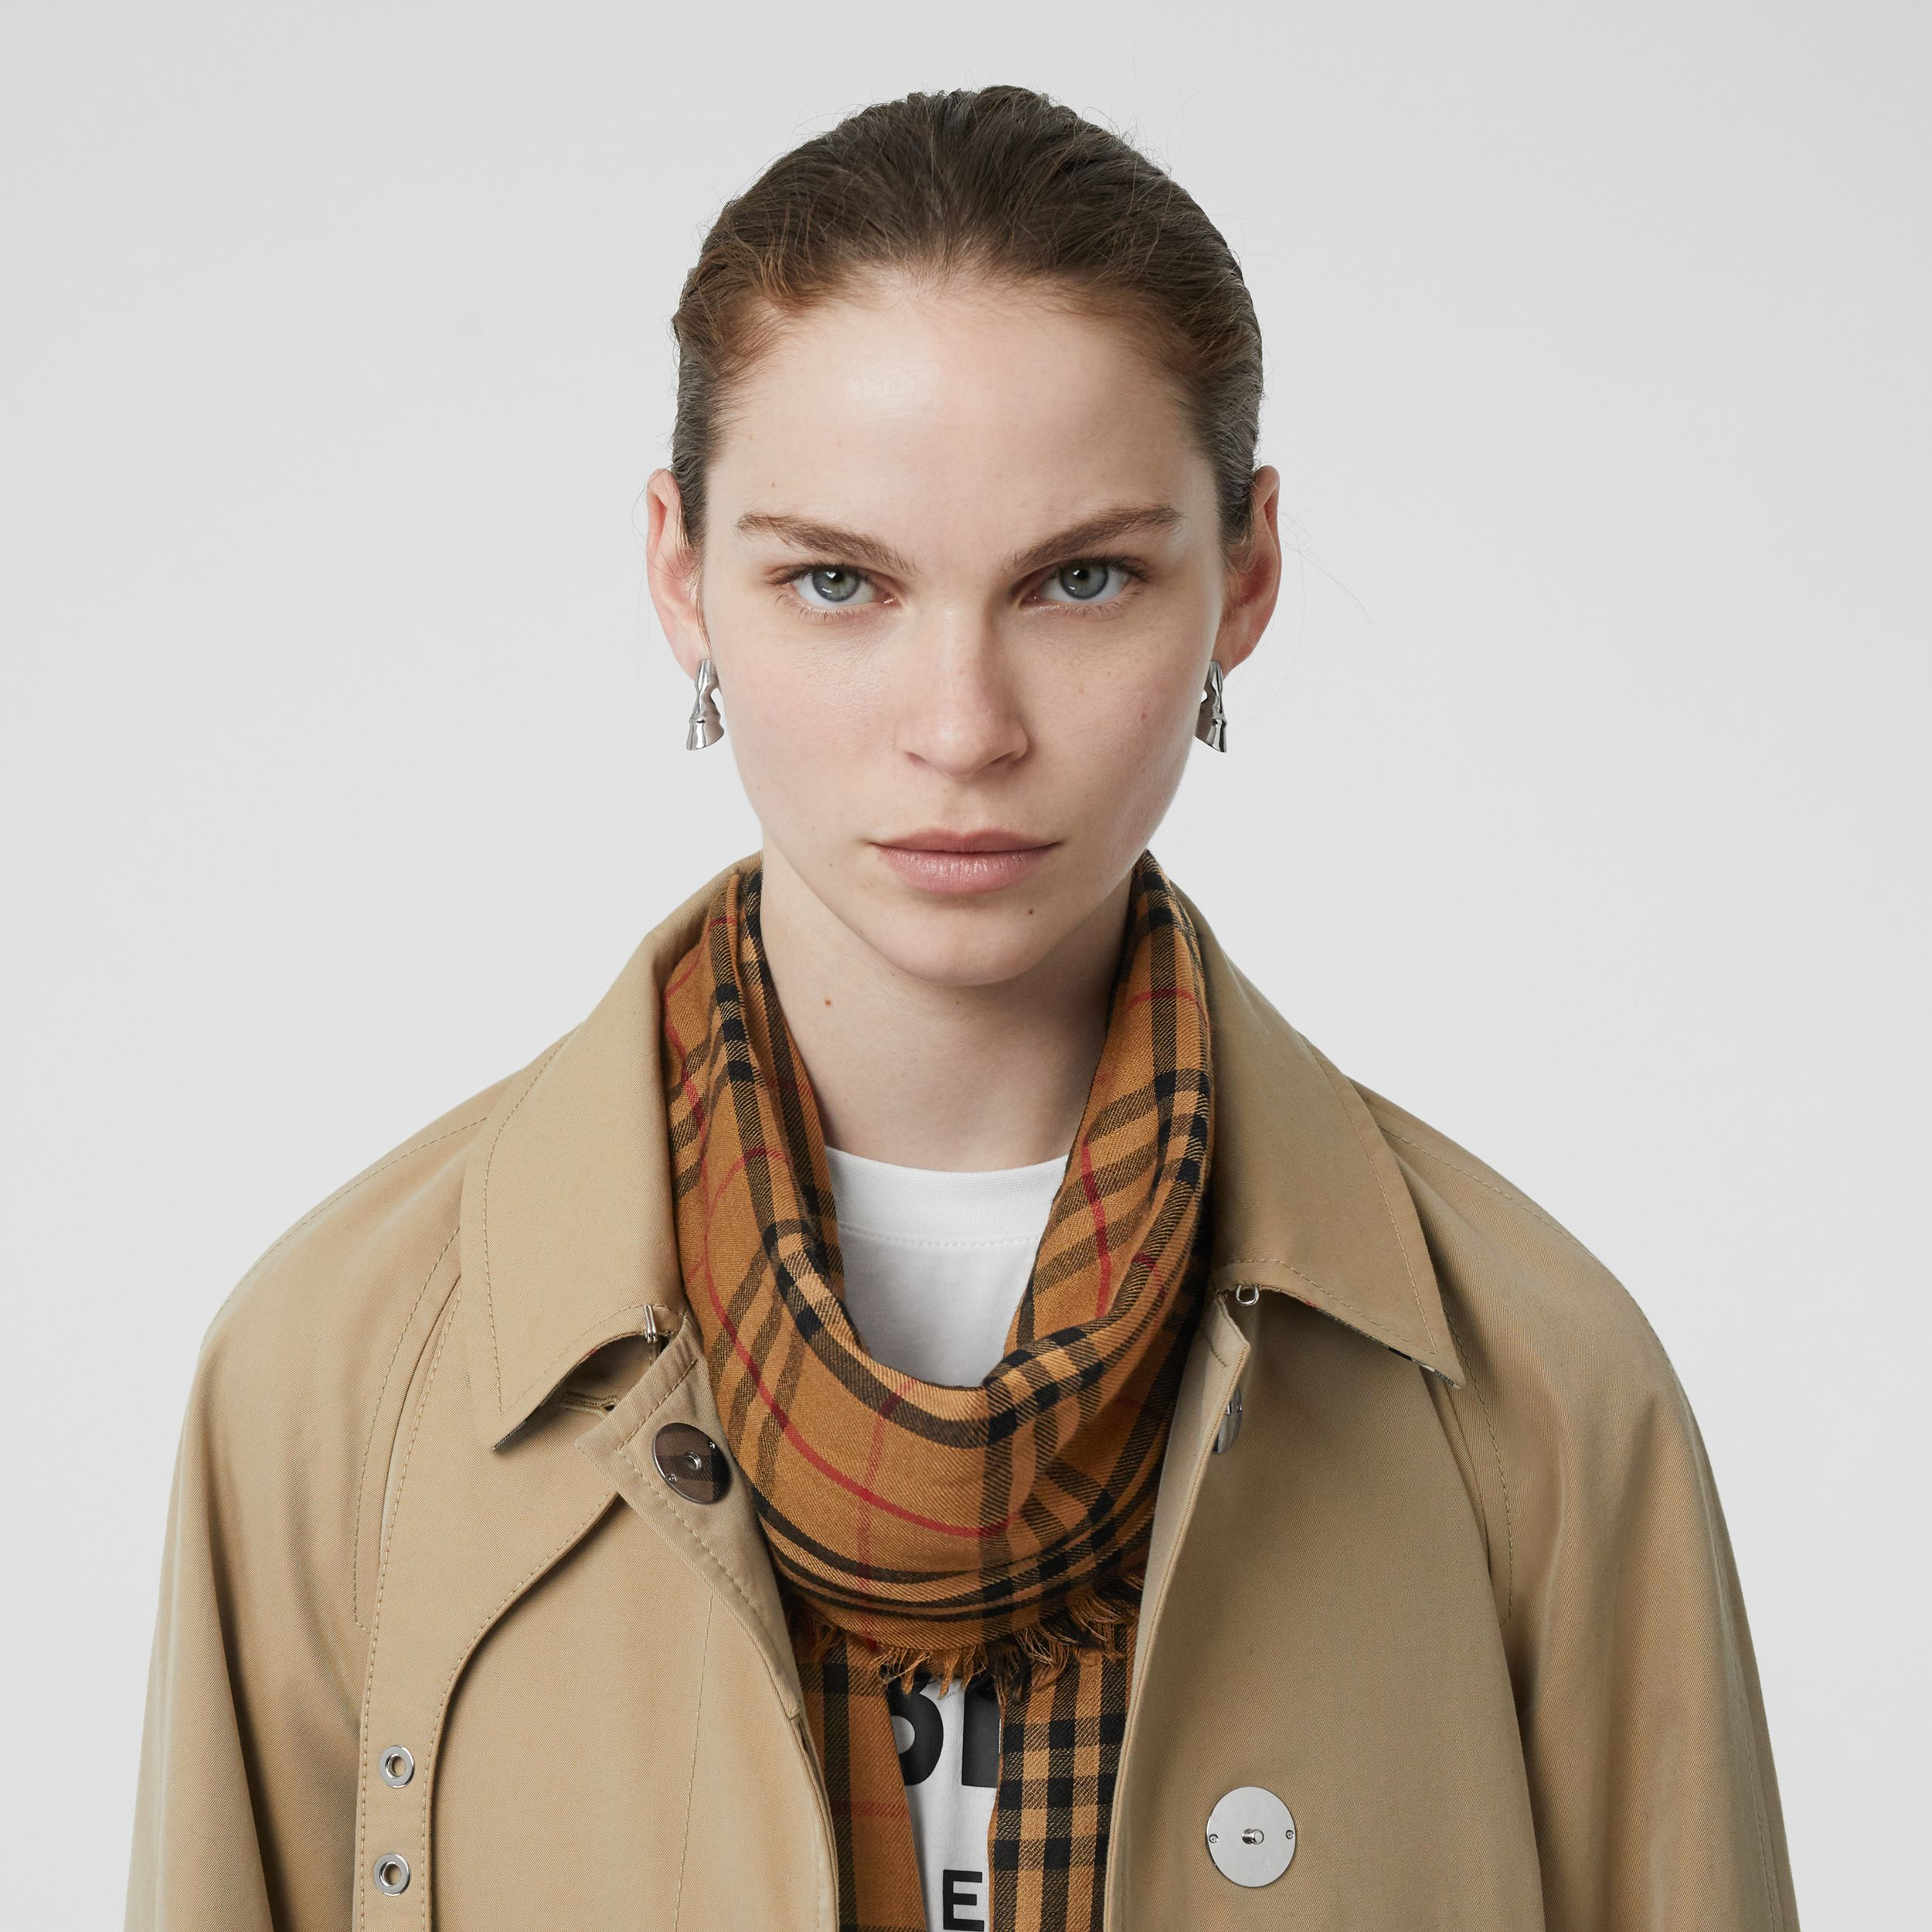 Embroidered Vintage Check Lightweight Cashmere Scarf in Overdyed Camel | Burberry - 3